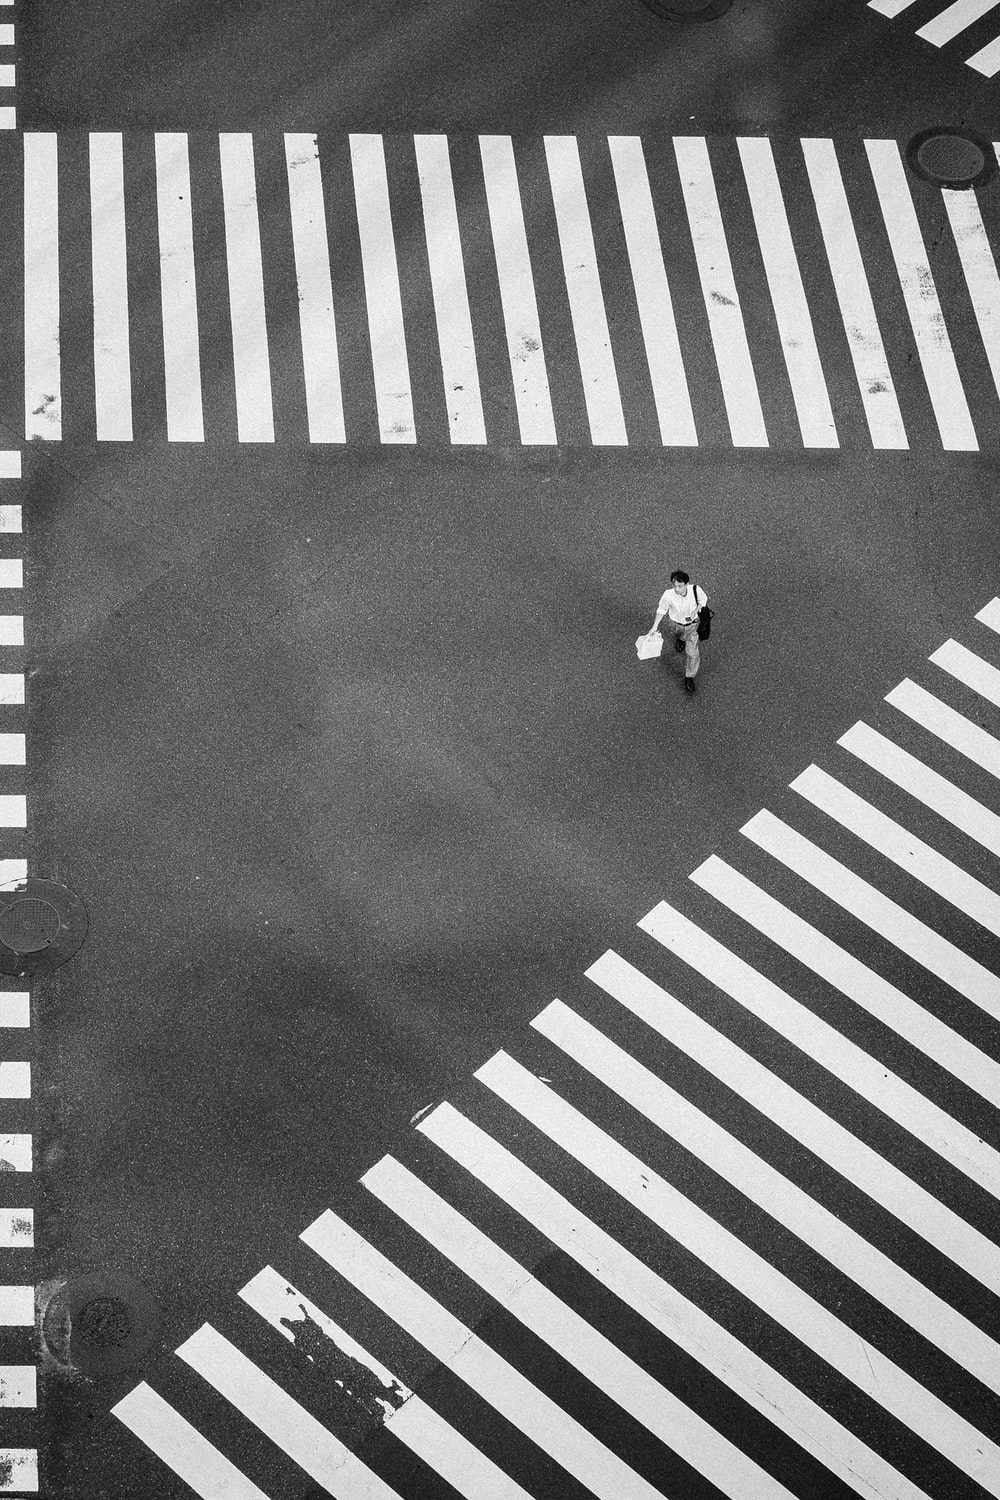 man walking at the center of crisscrossing pedestrian lanes